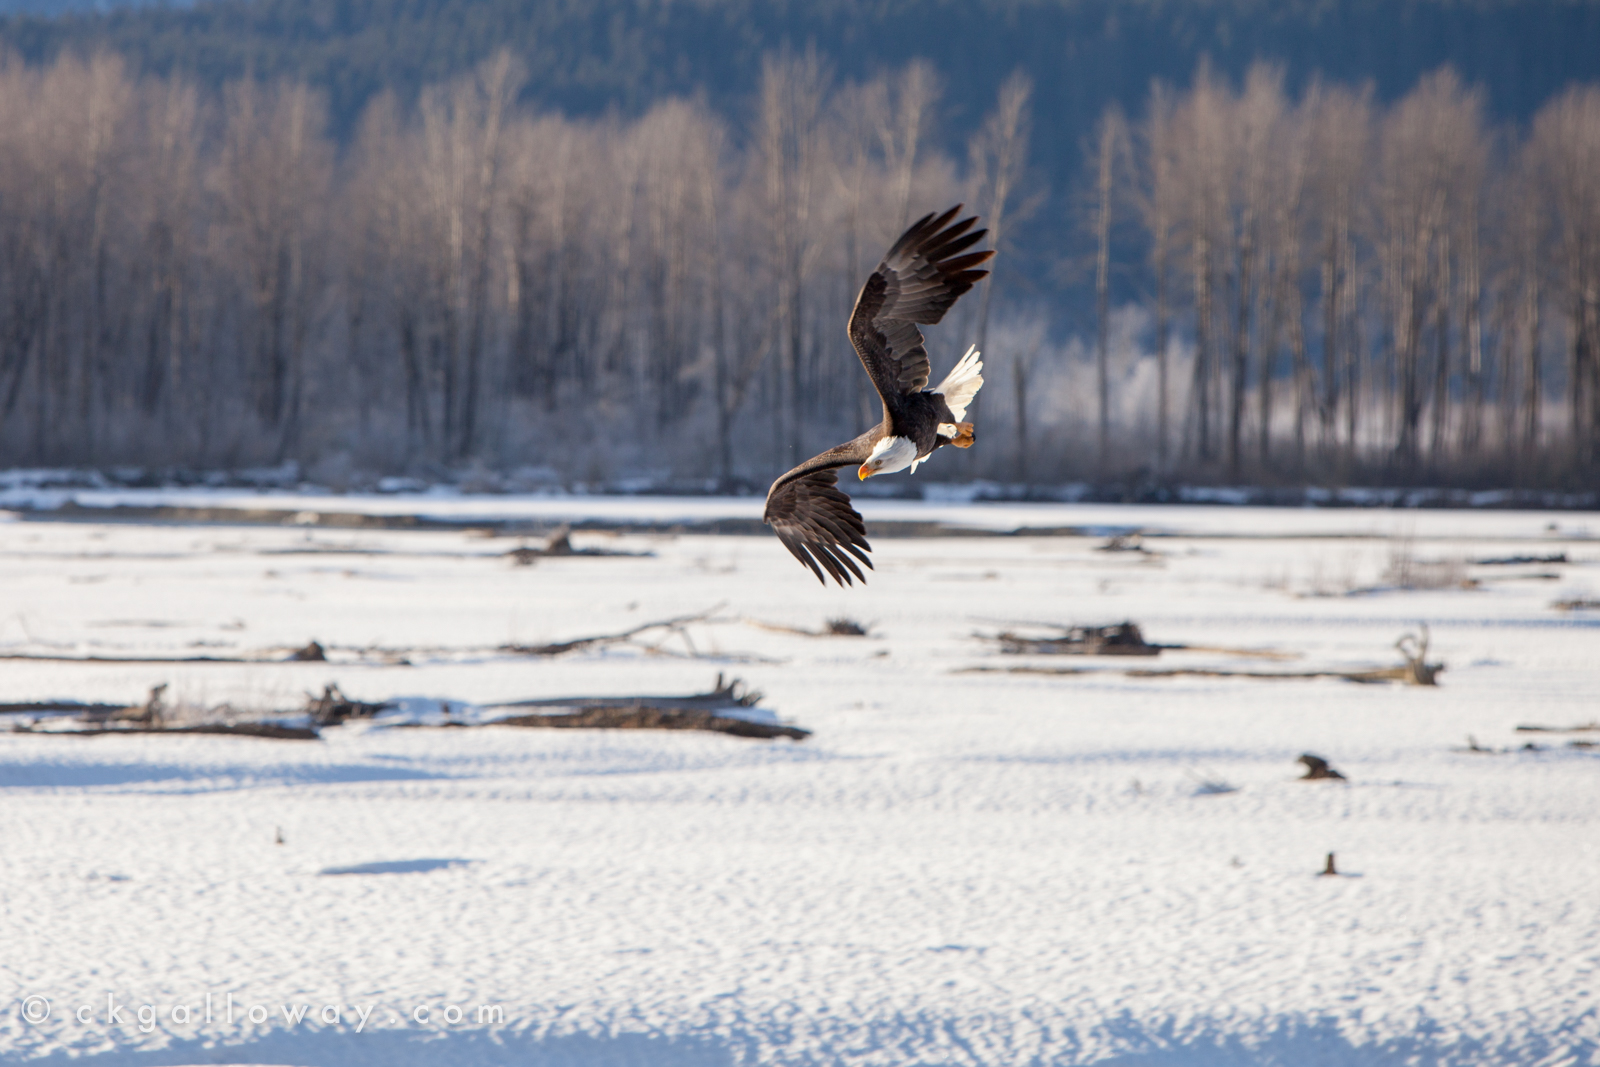 An eagle fishes on the Chilkat River. Photo by Christa Galloway.